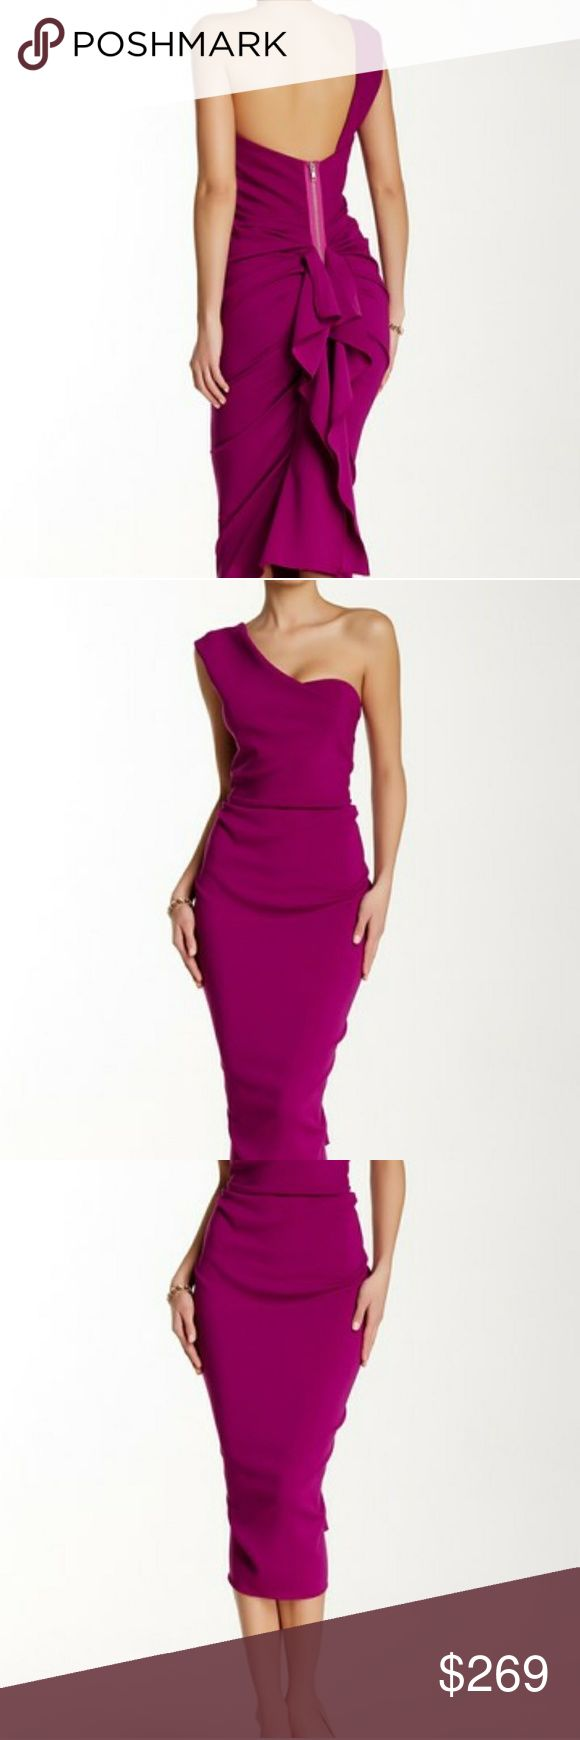 NWT Issue NY magenta dress Brand new with tags off the shoulder magenta (fushia) dress with a ruffled back. Issue New York Dresses Midi